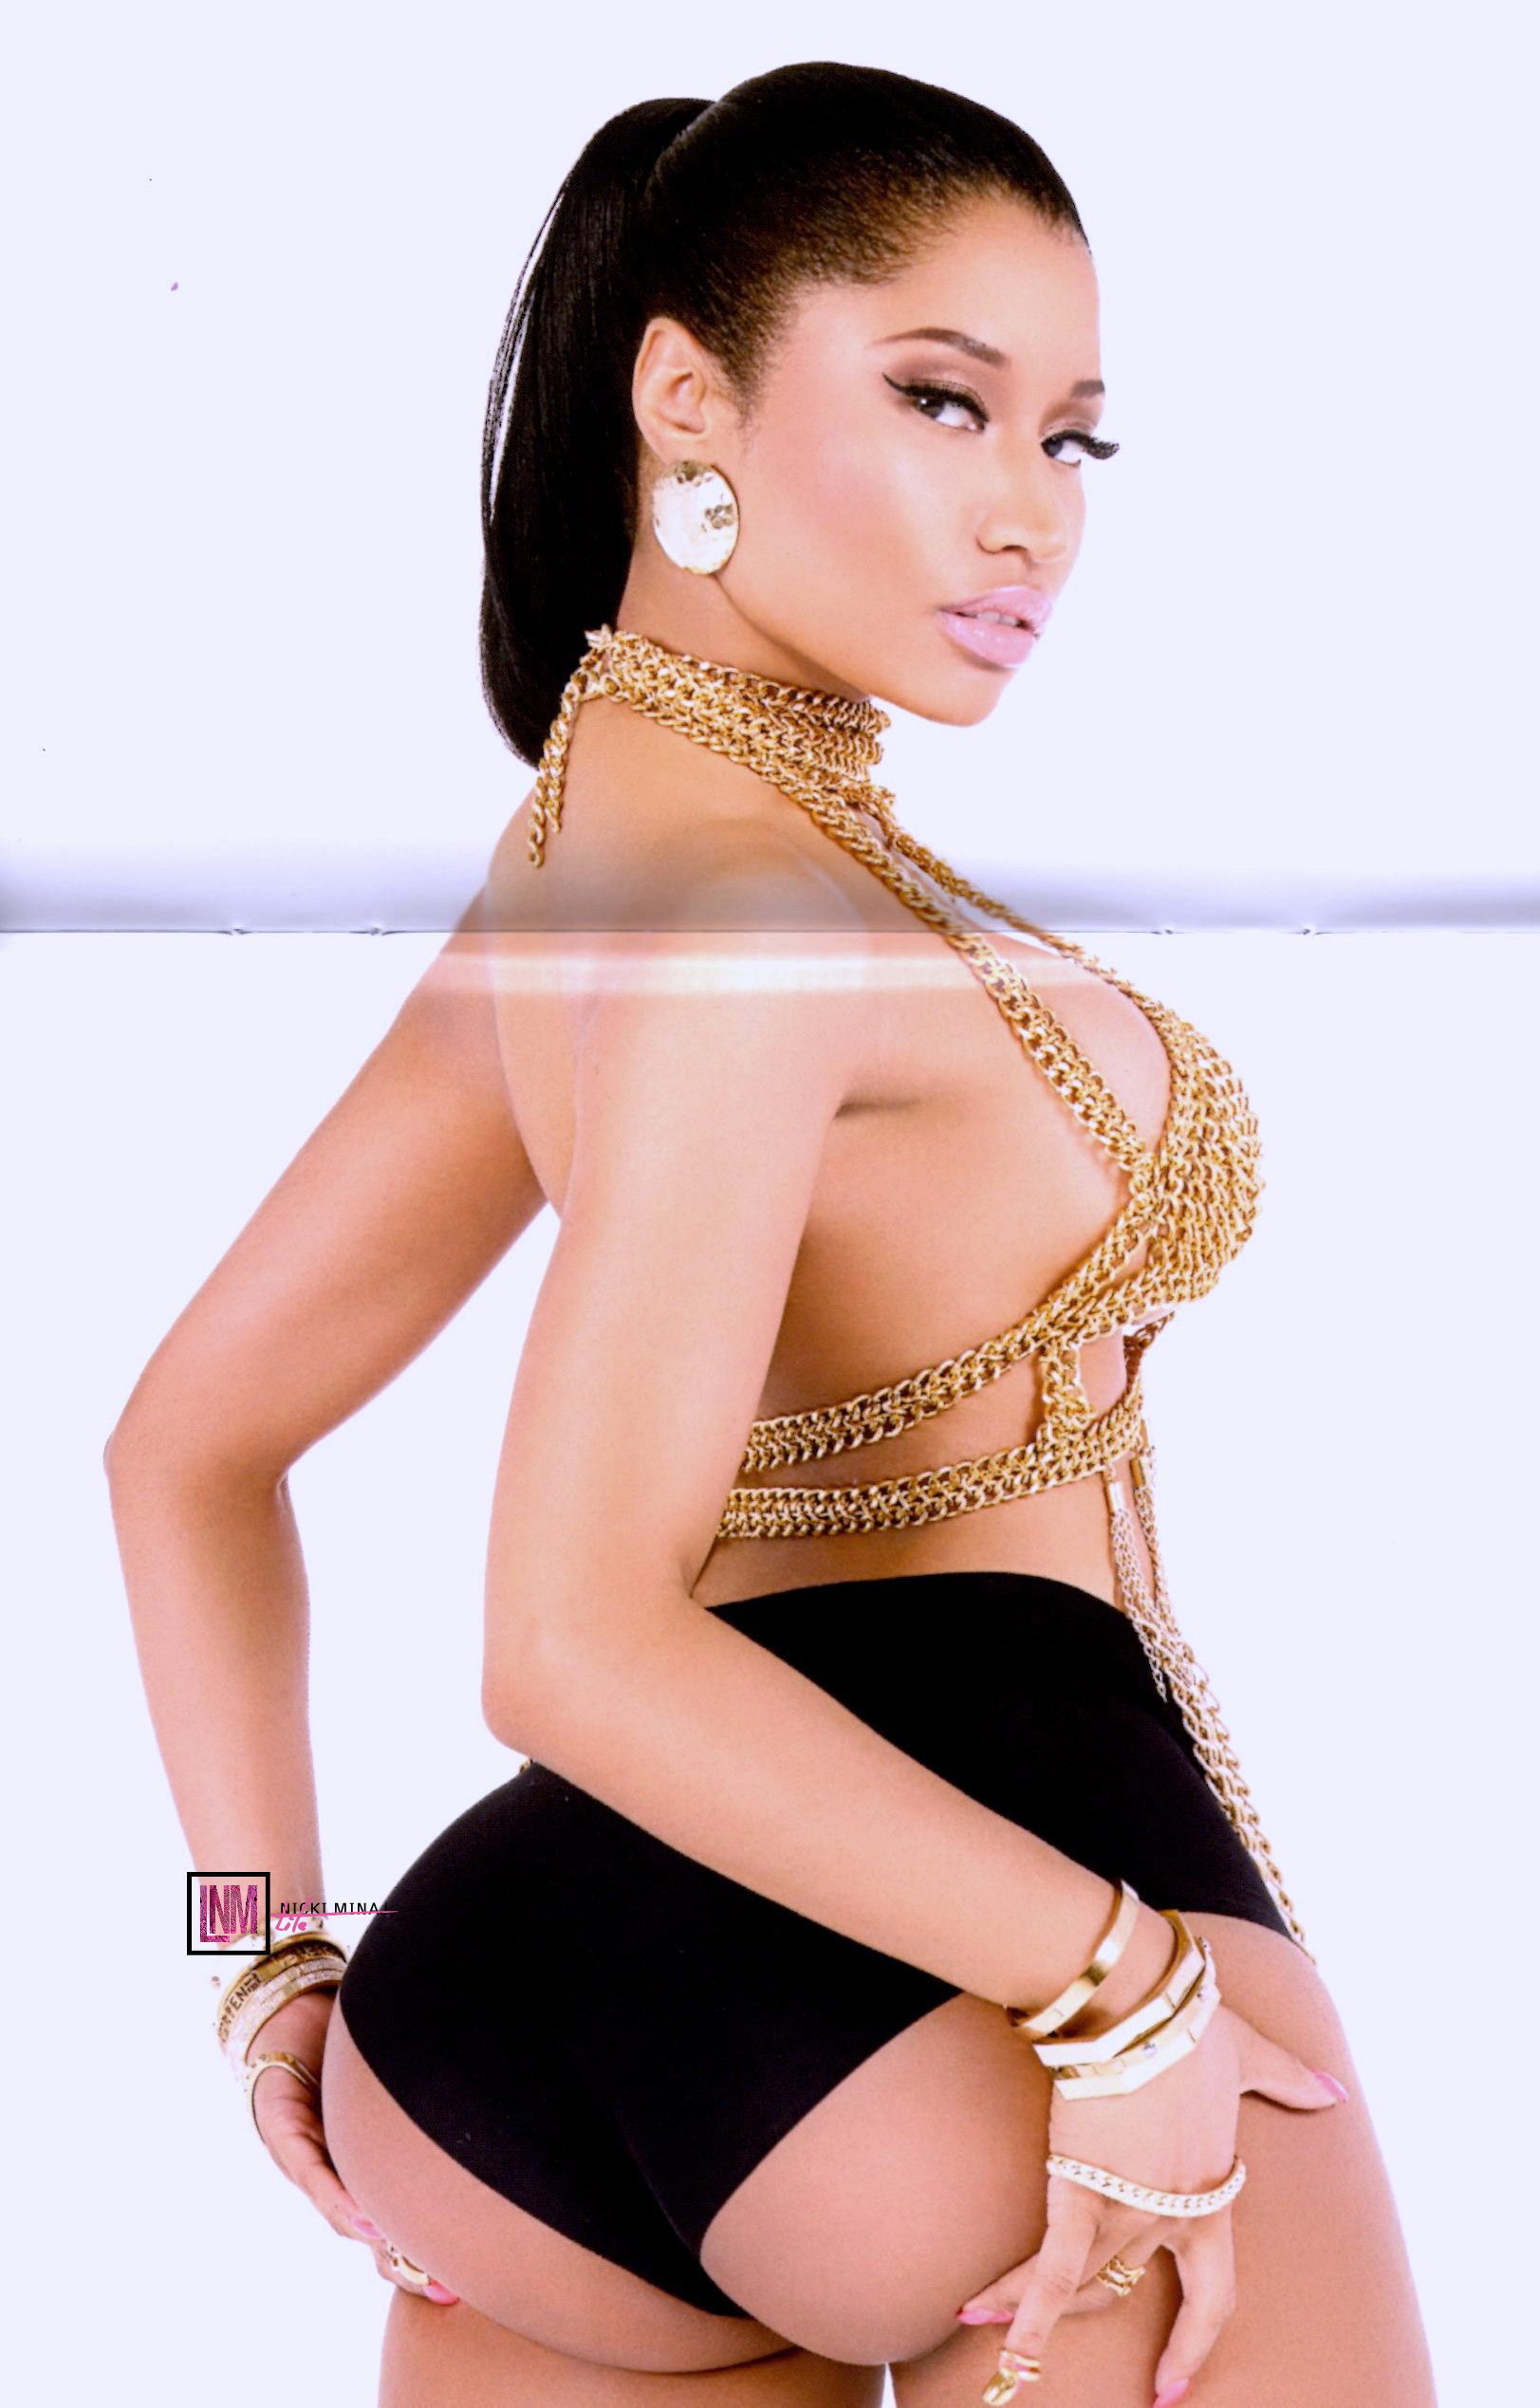 Drake and nicki minaj dating yahoo 4